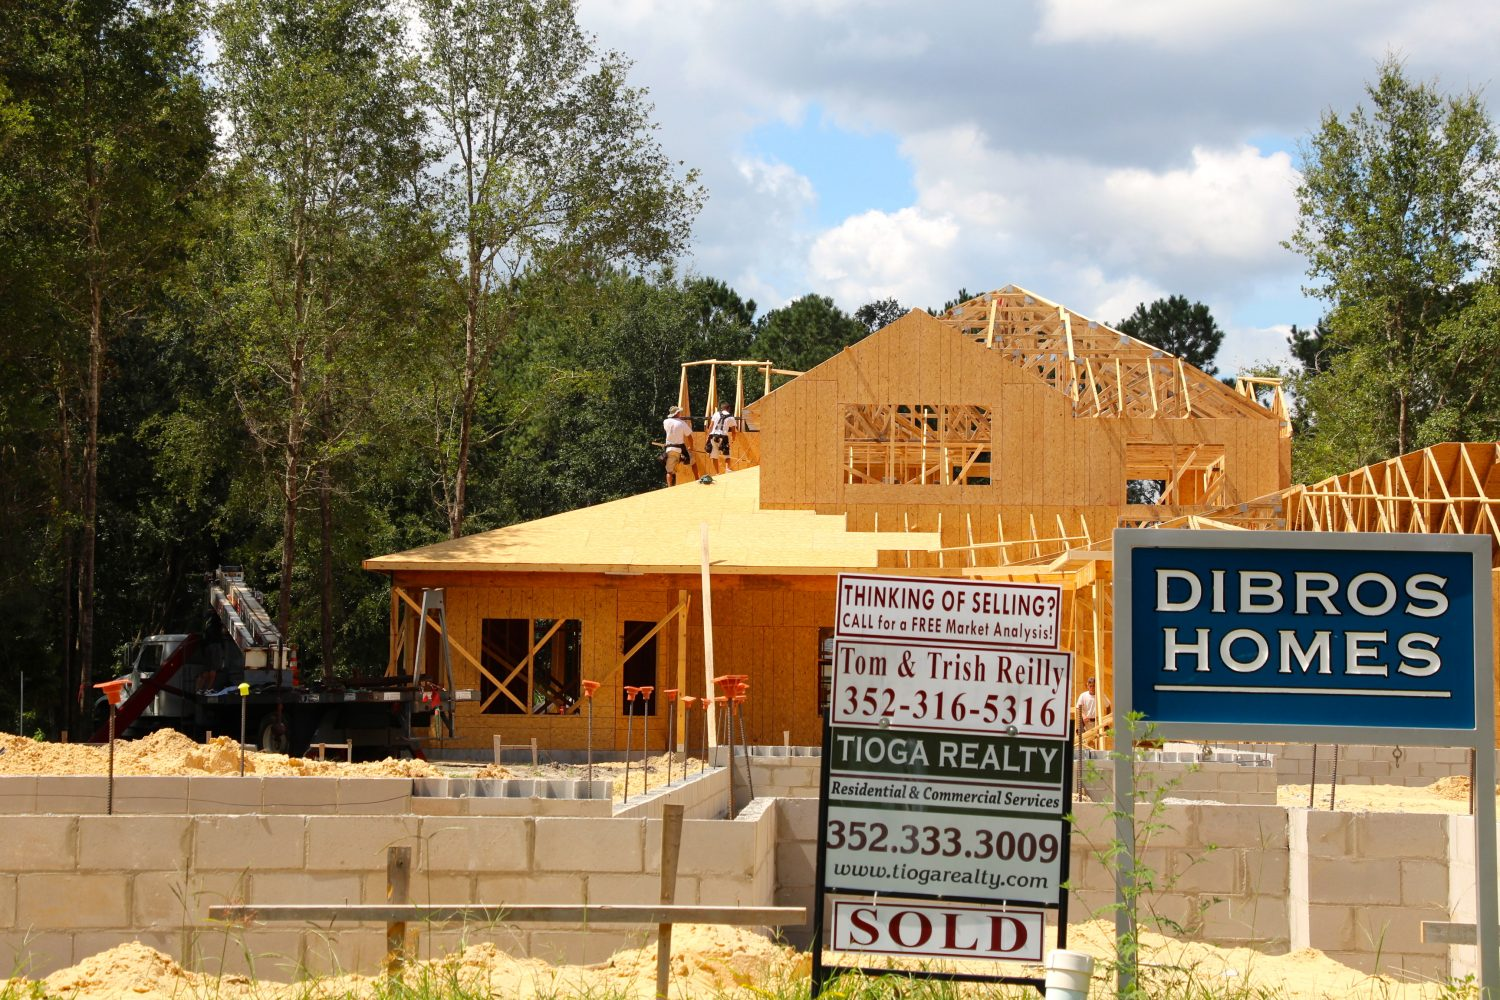 Town of Tioga houses sell before they are built. The demand for new homes has increased in recent years.